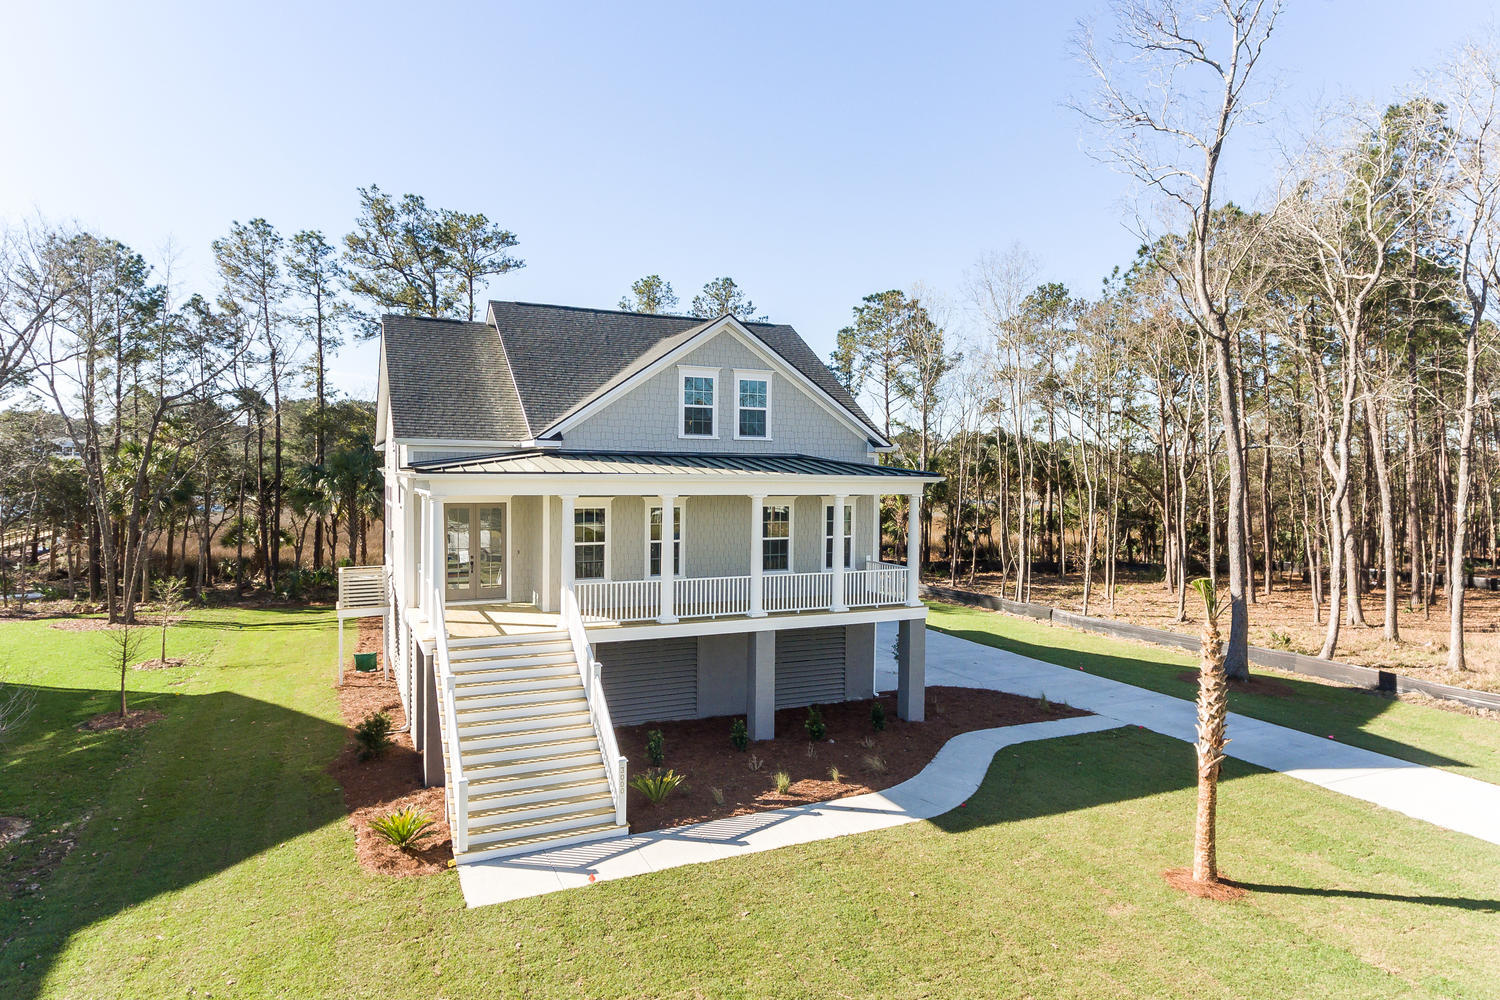 Dunes West Homes For Sale - 3000 Yachtsman, Mount Pleasant, SC - 44